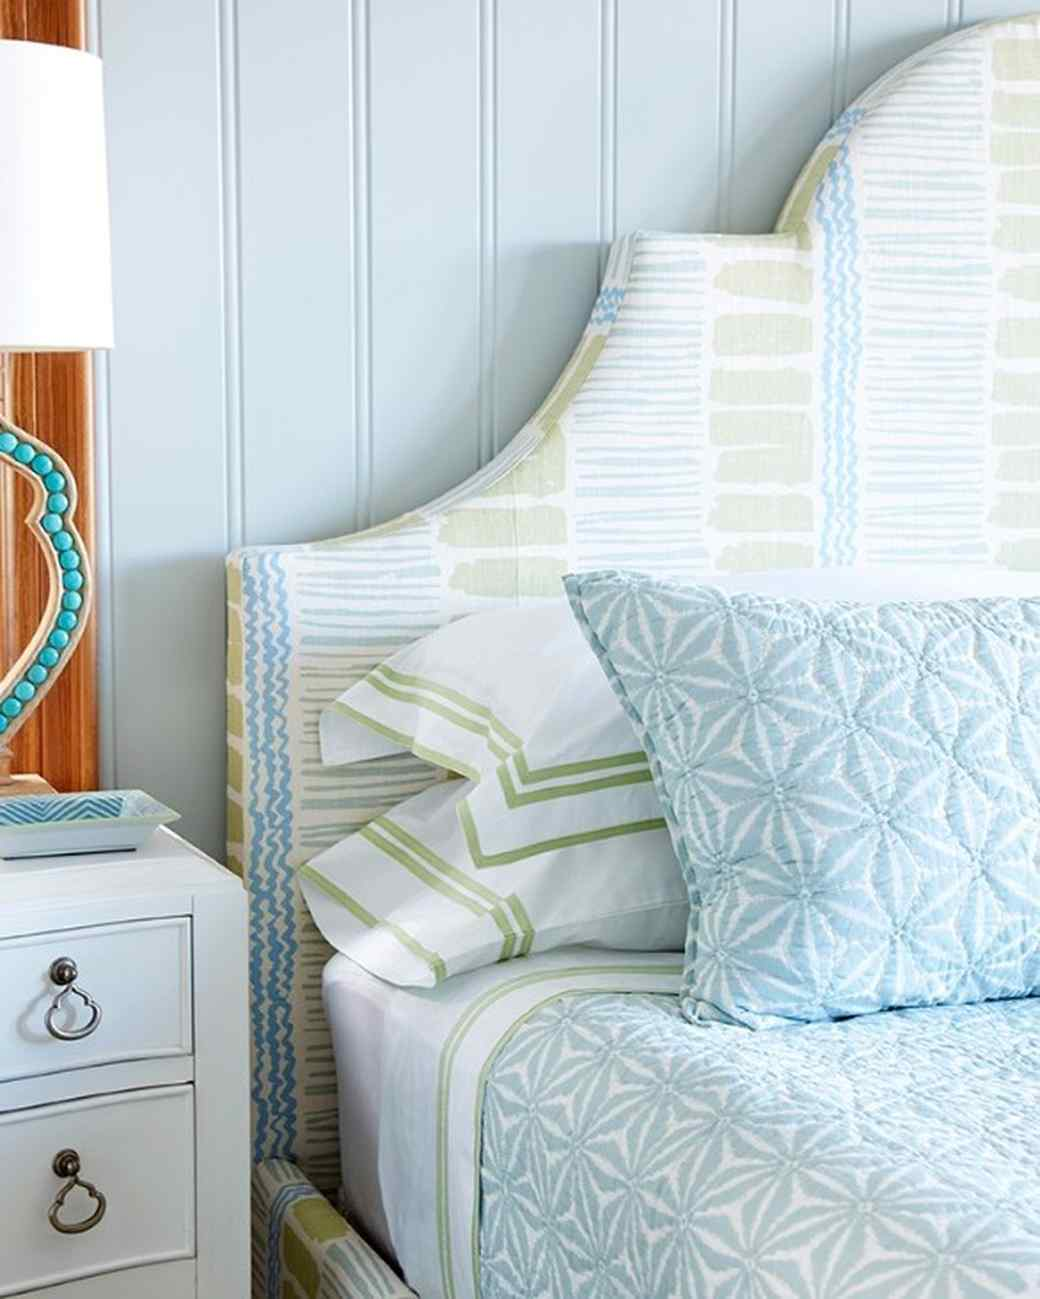 spring-inspired paint colors